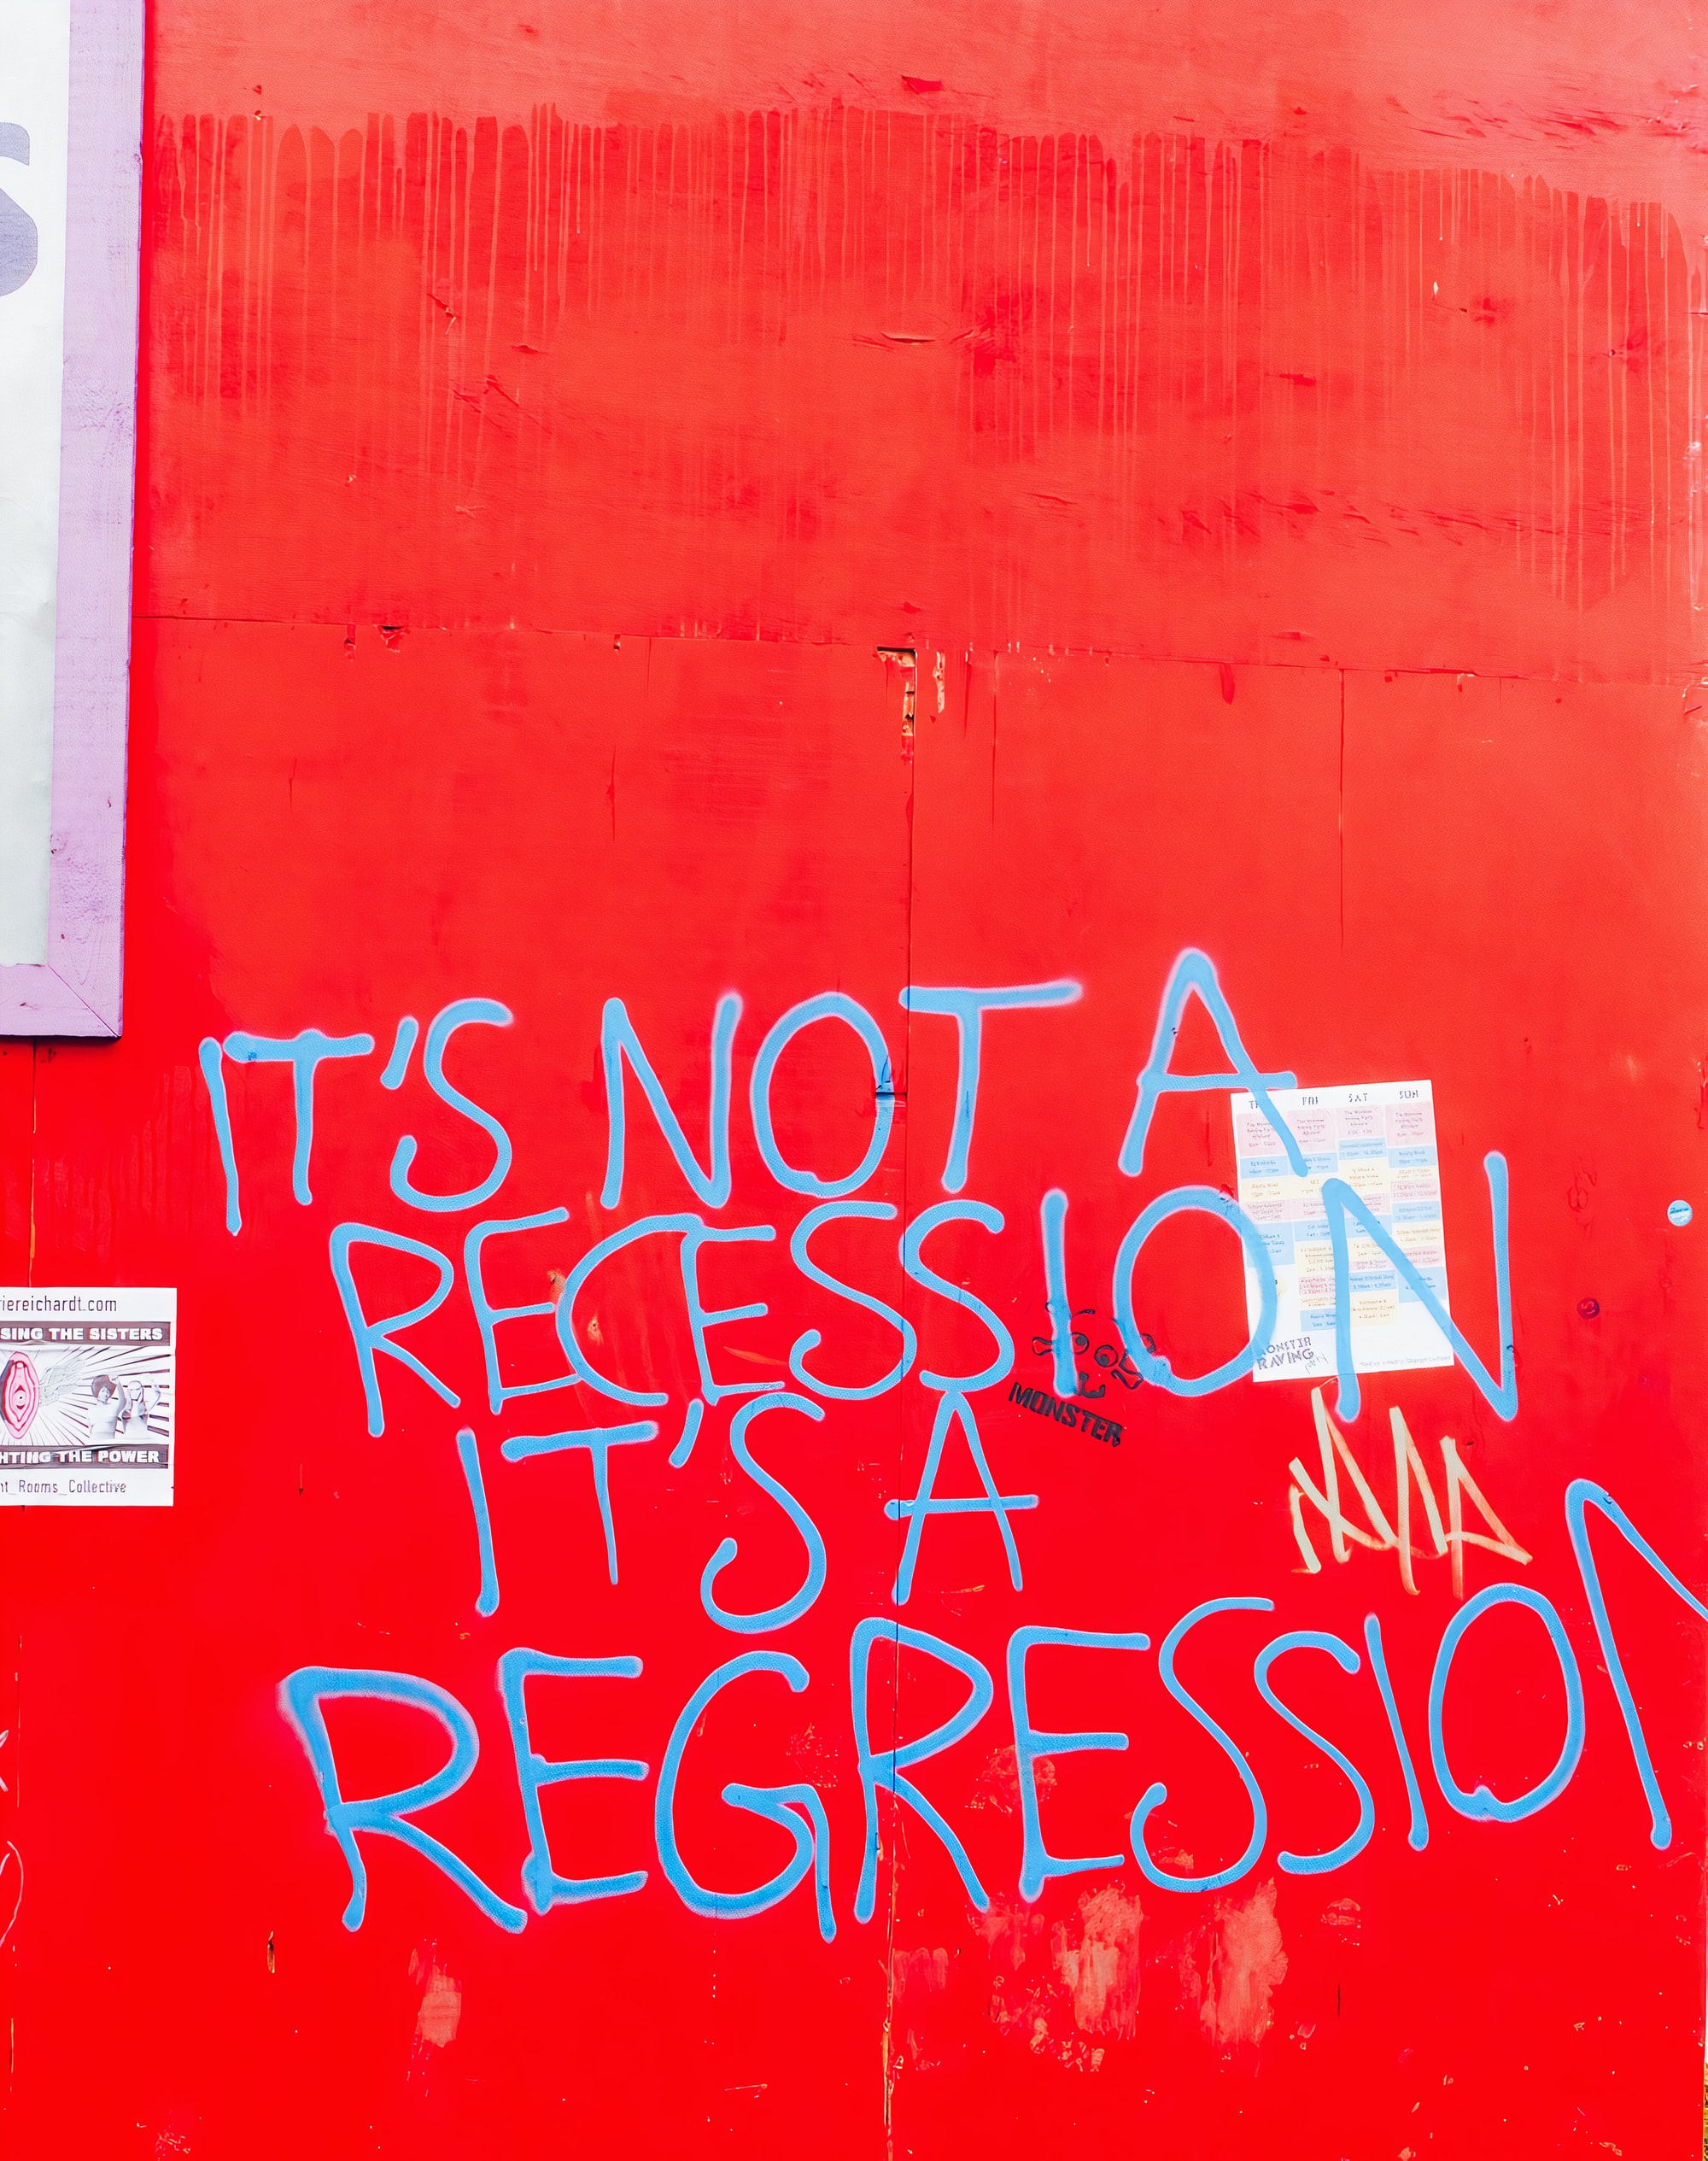 Recession Testing is the new Regression Testing